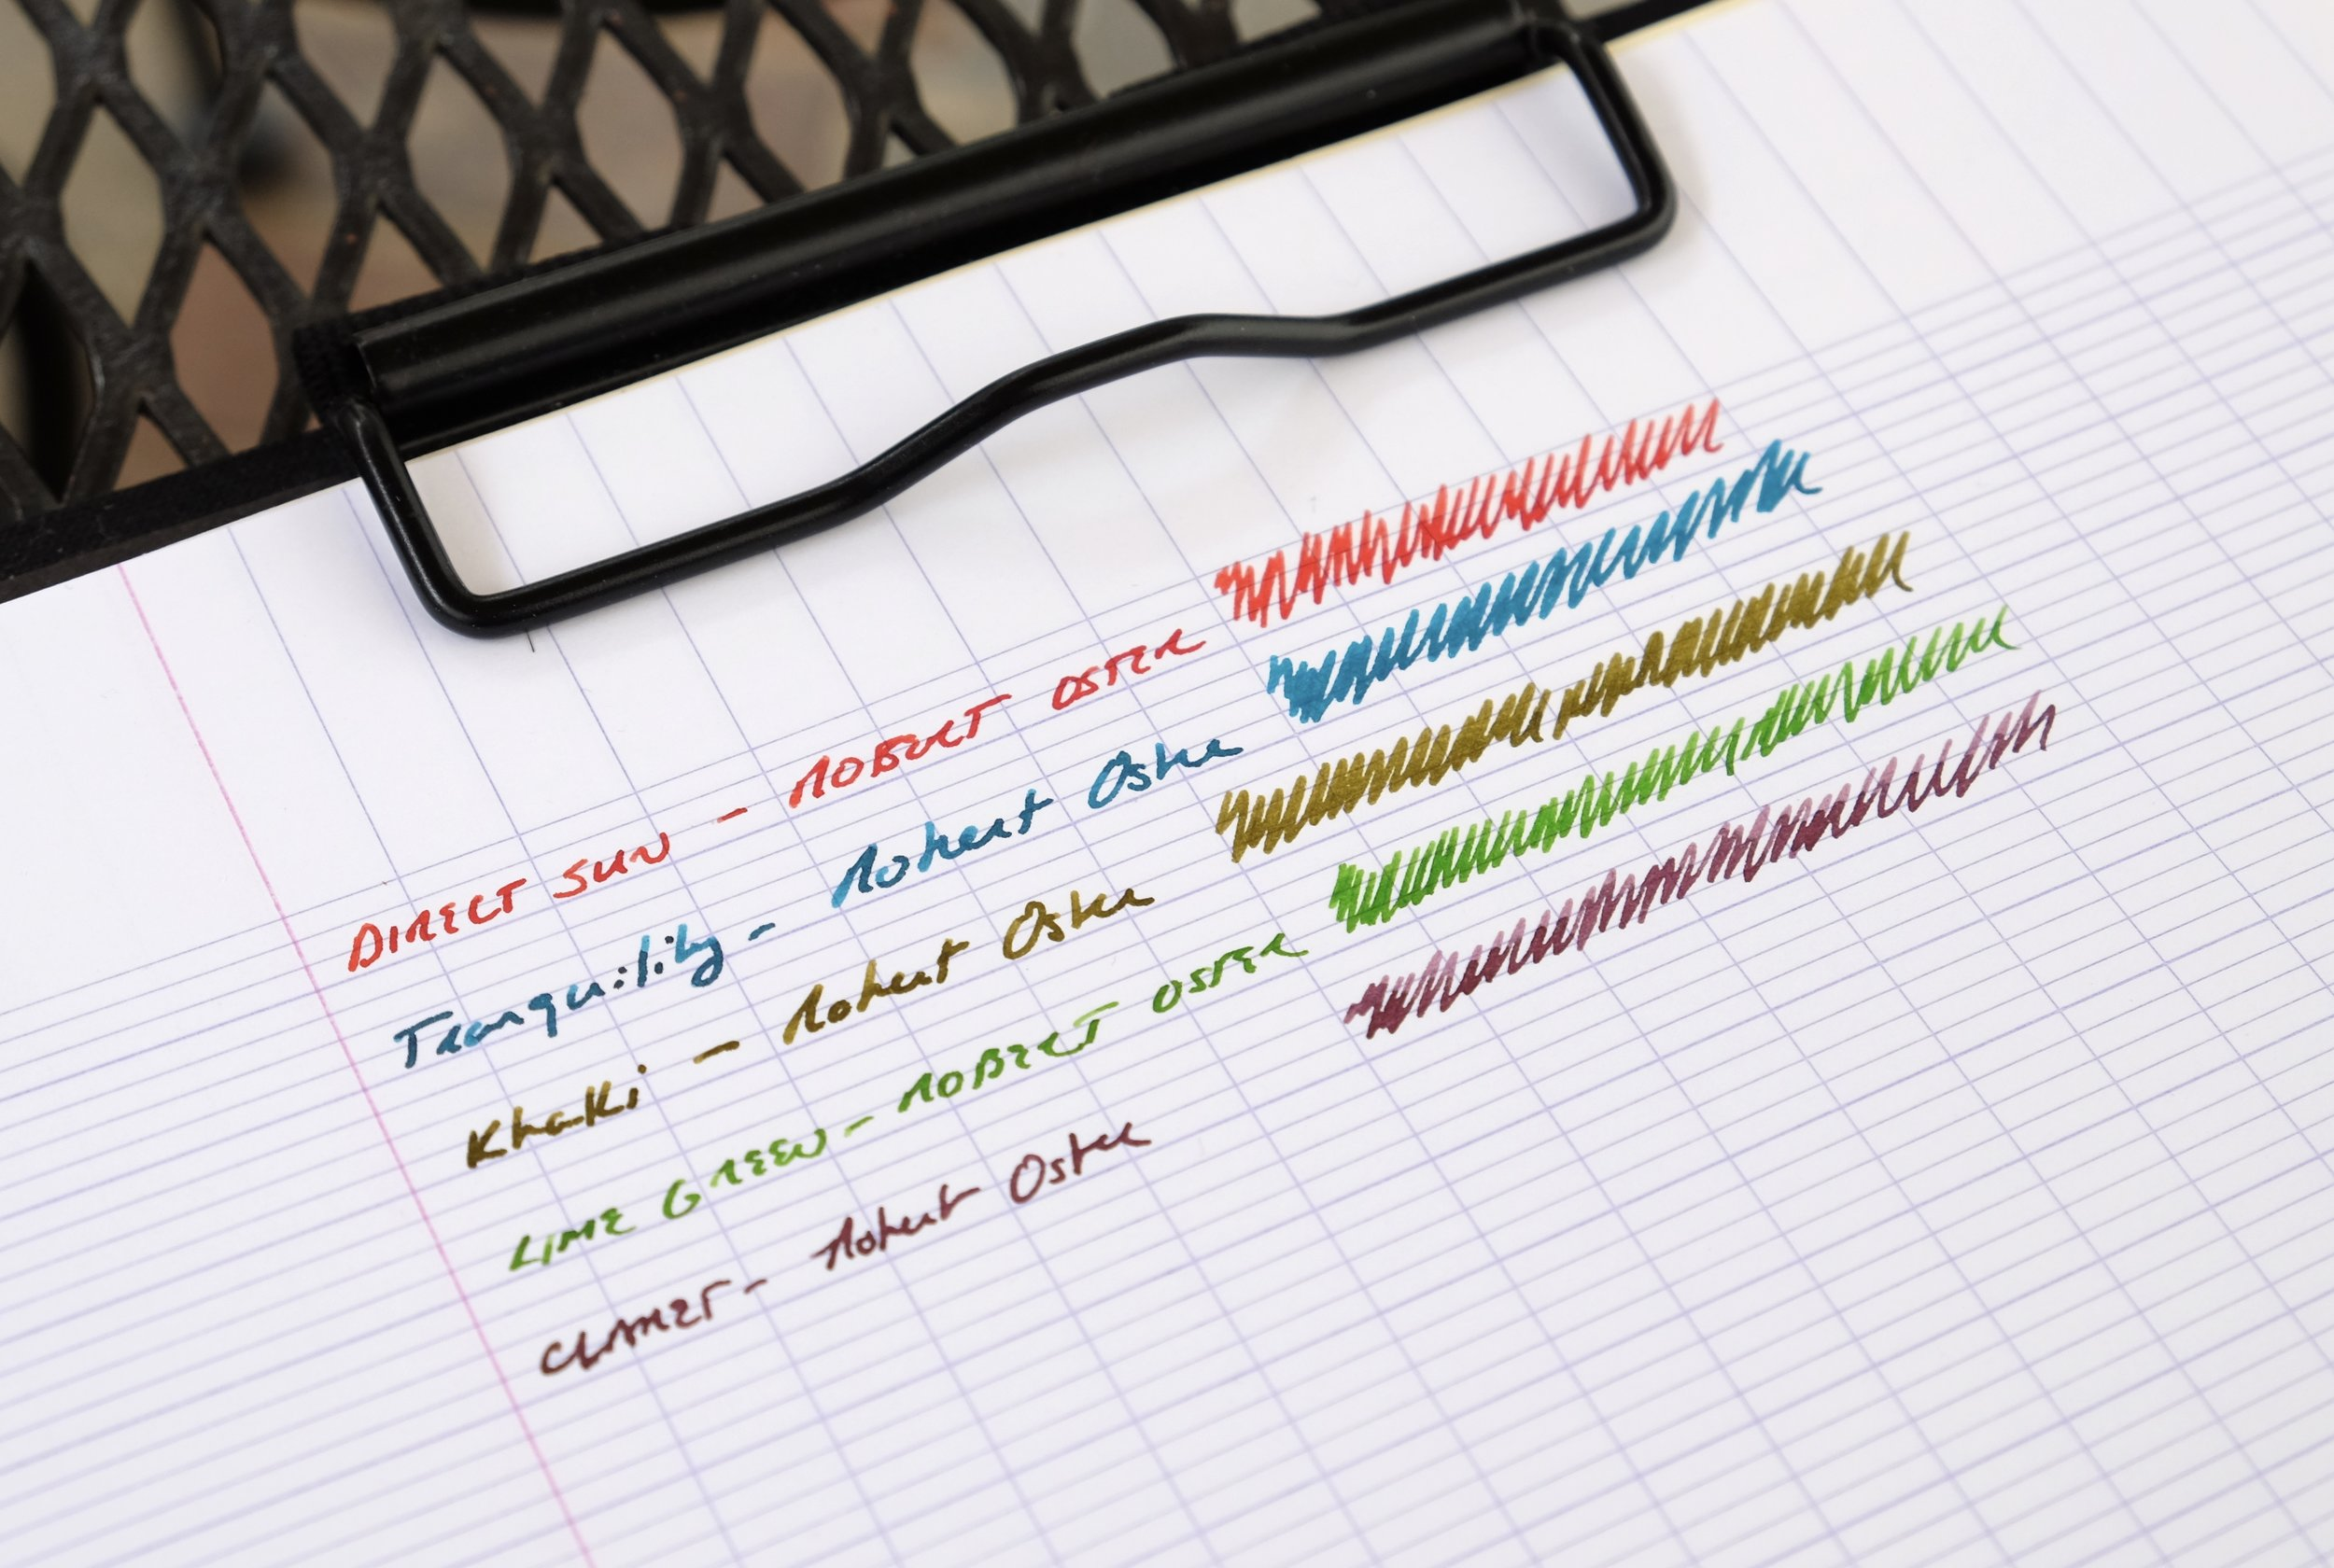 Many thanks to Vanness Pens for sending over samples of these five Robert Oster inks to review!